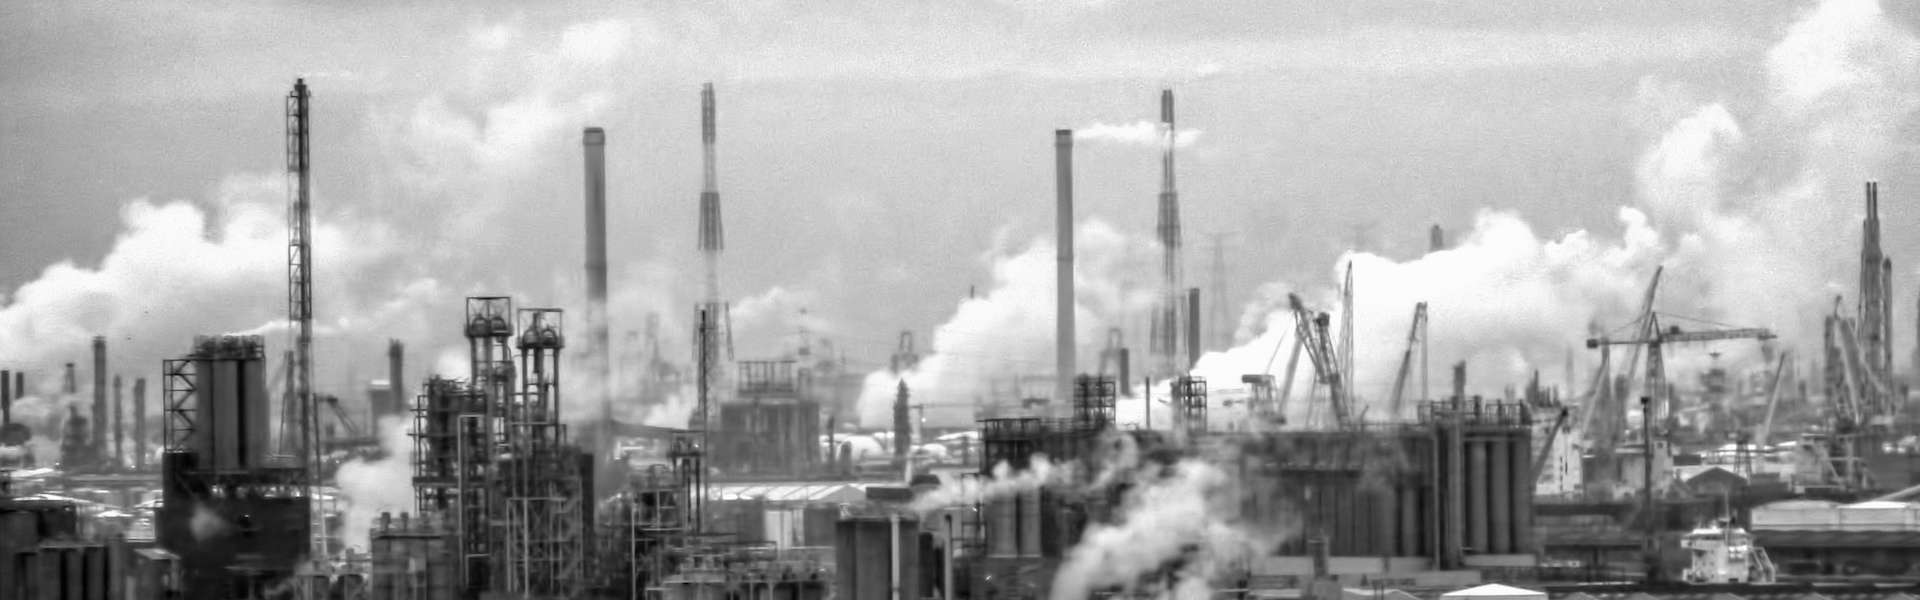 Why Fossil Fuel Companies Must Evolve or Die: An Interview with Carbon Tracker Founder Mark Campanale, on NextBillion.net.